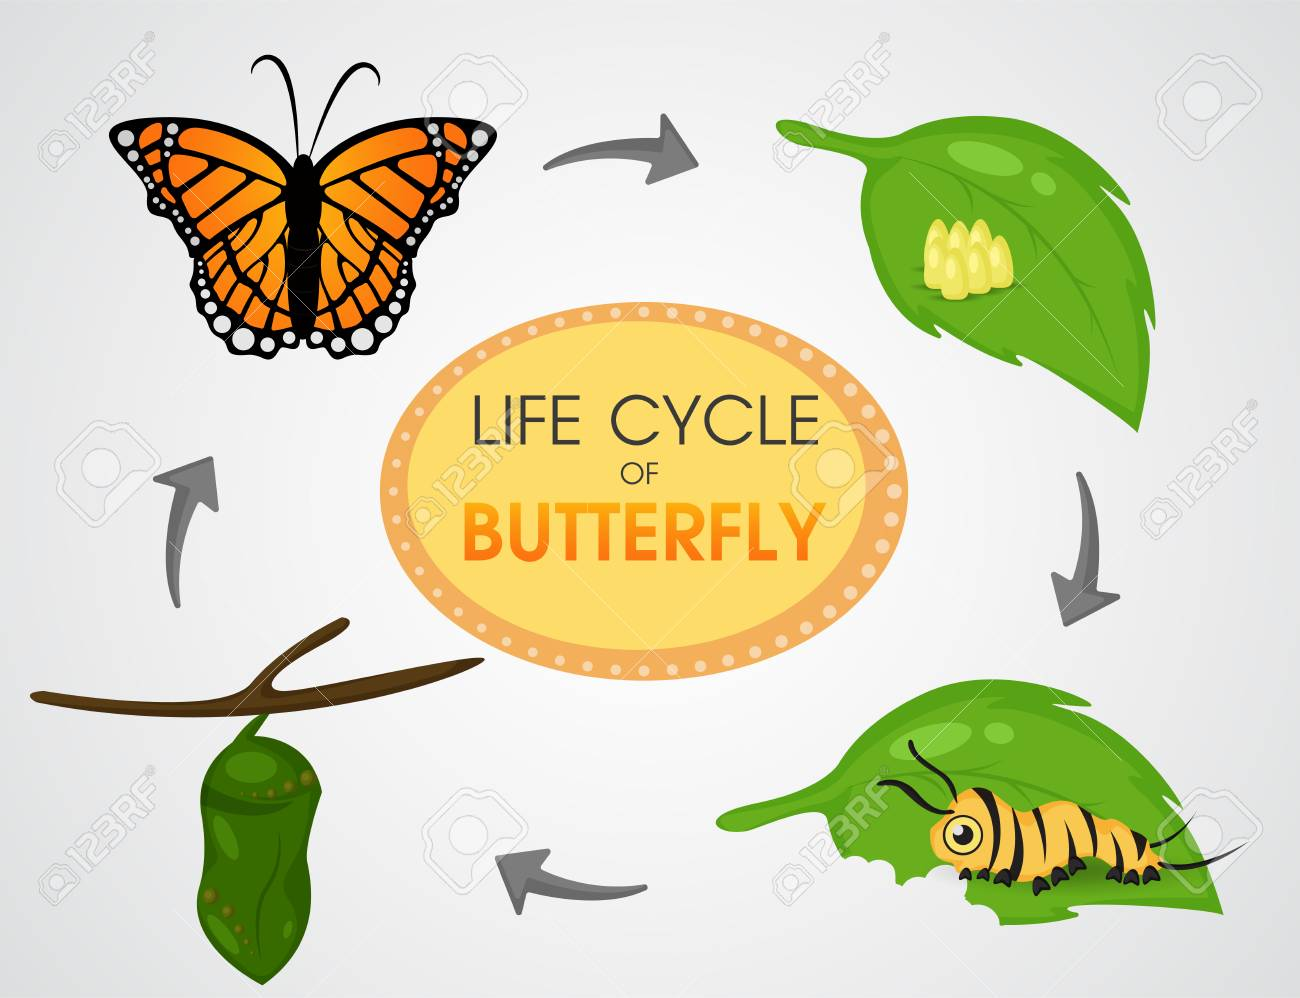 Life cycle of Butterfly..